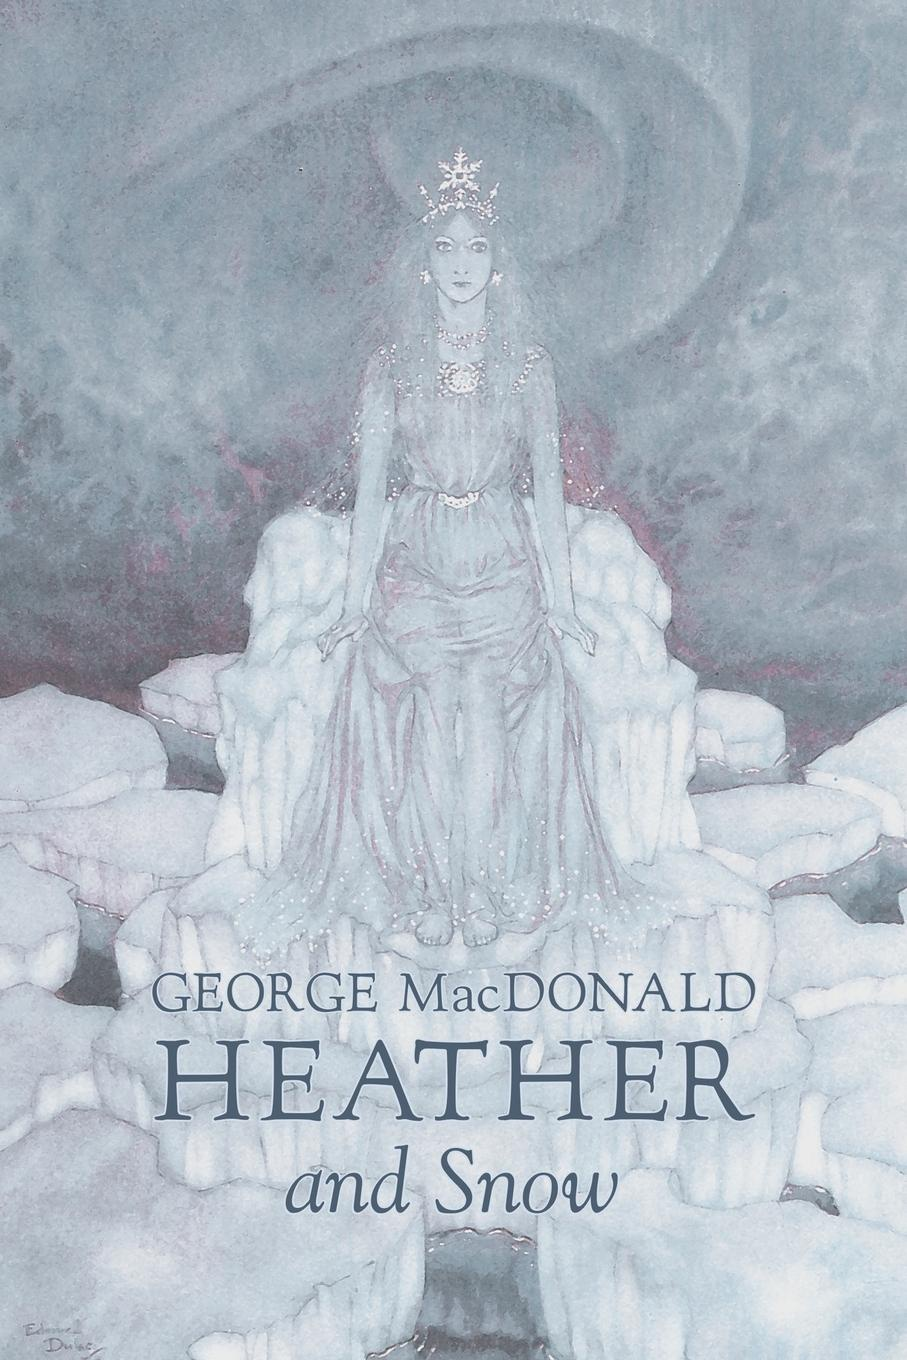 где купить MacDonald George Heather and Snow by George Macdonald, Fiction, Classics, Action & Adventure по лучшей цене